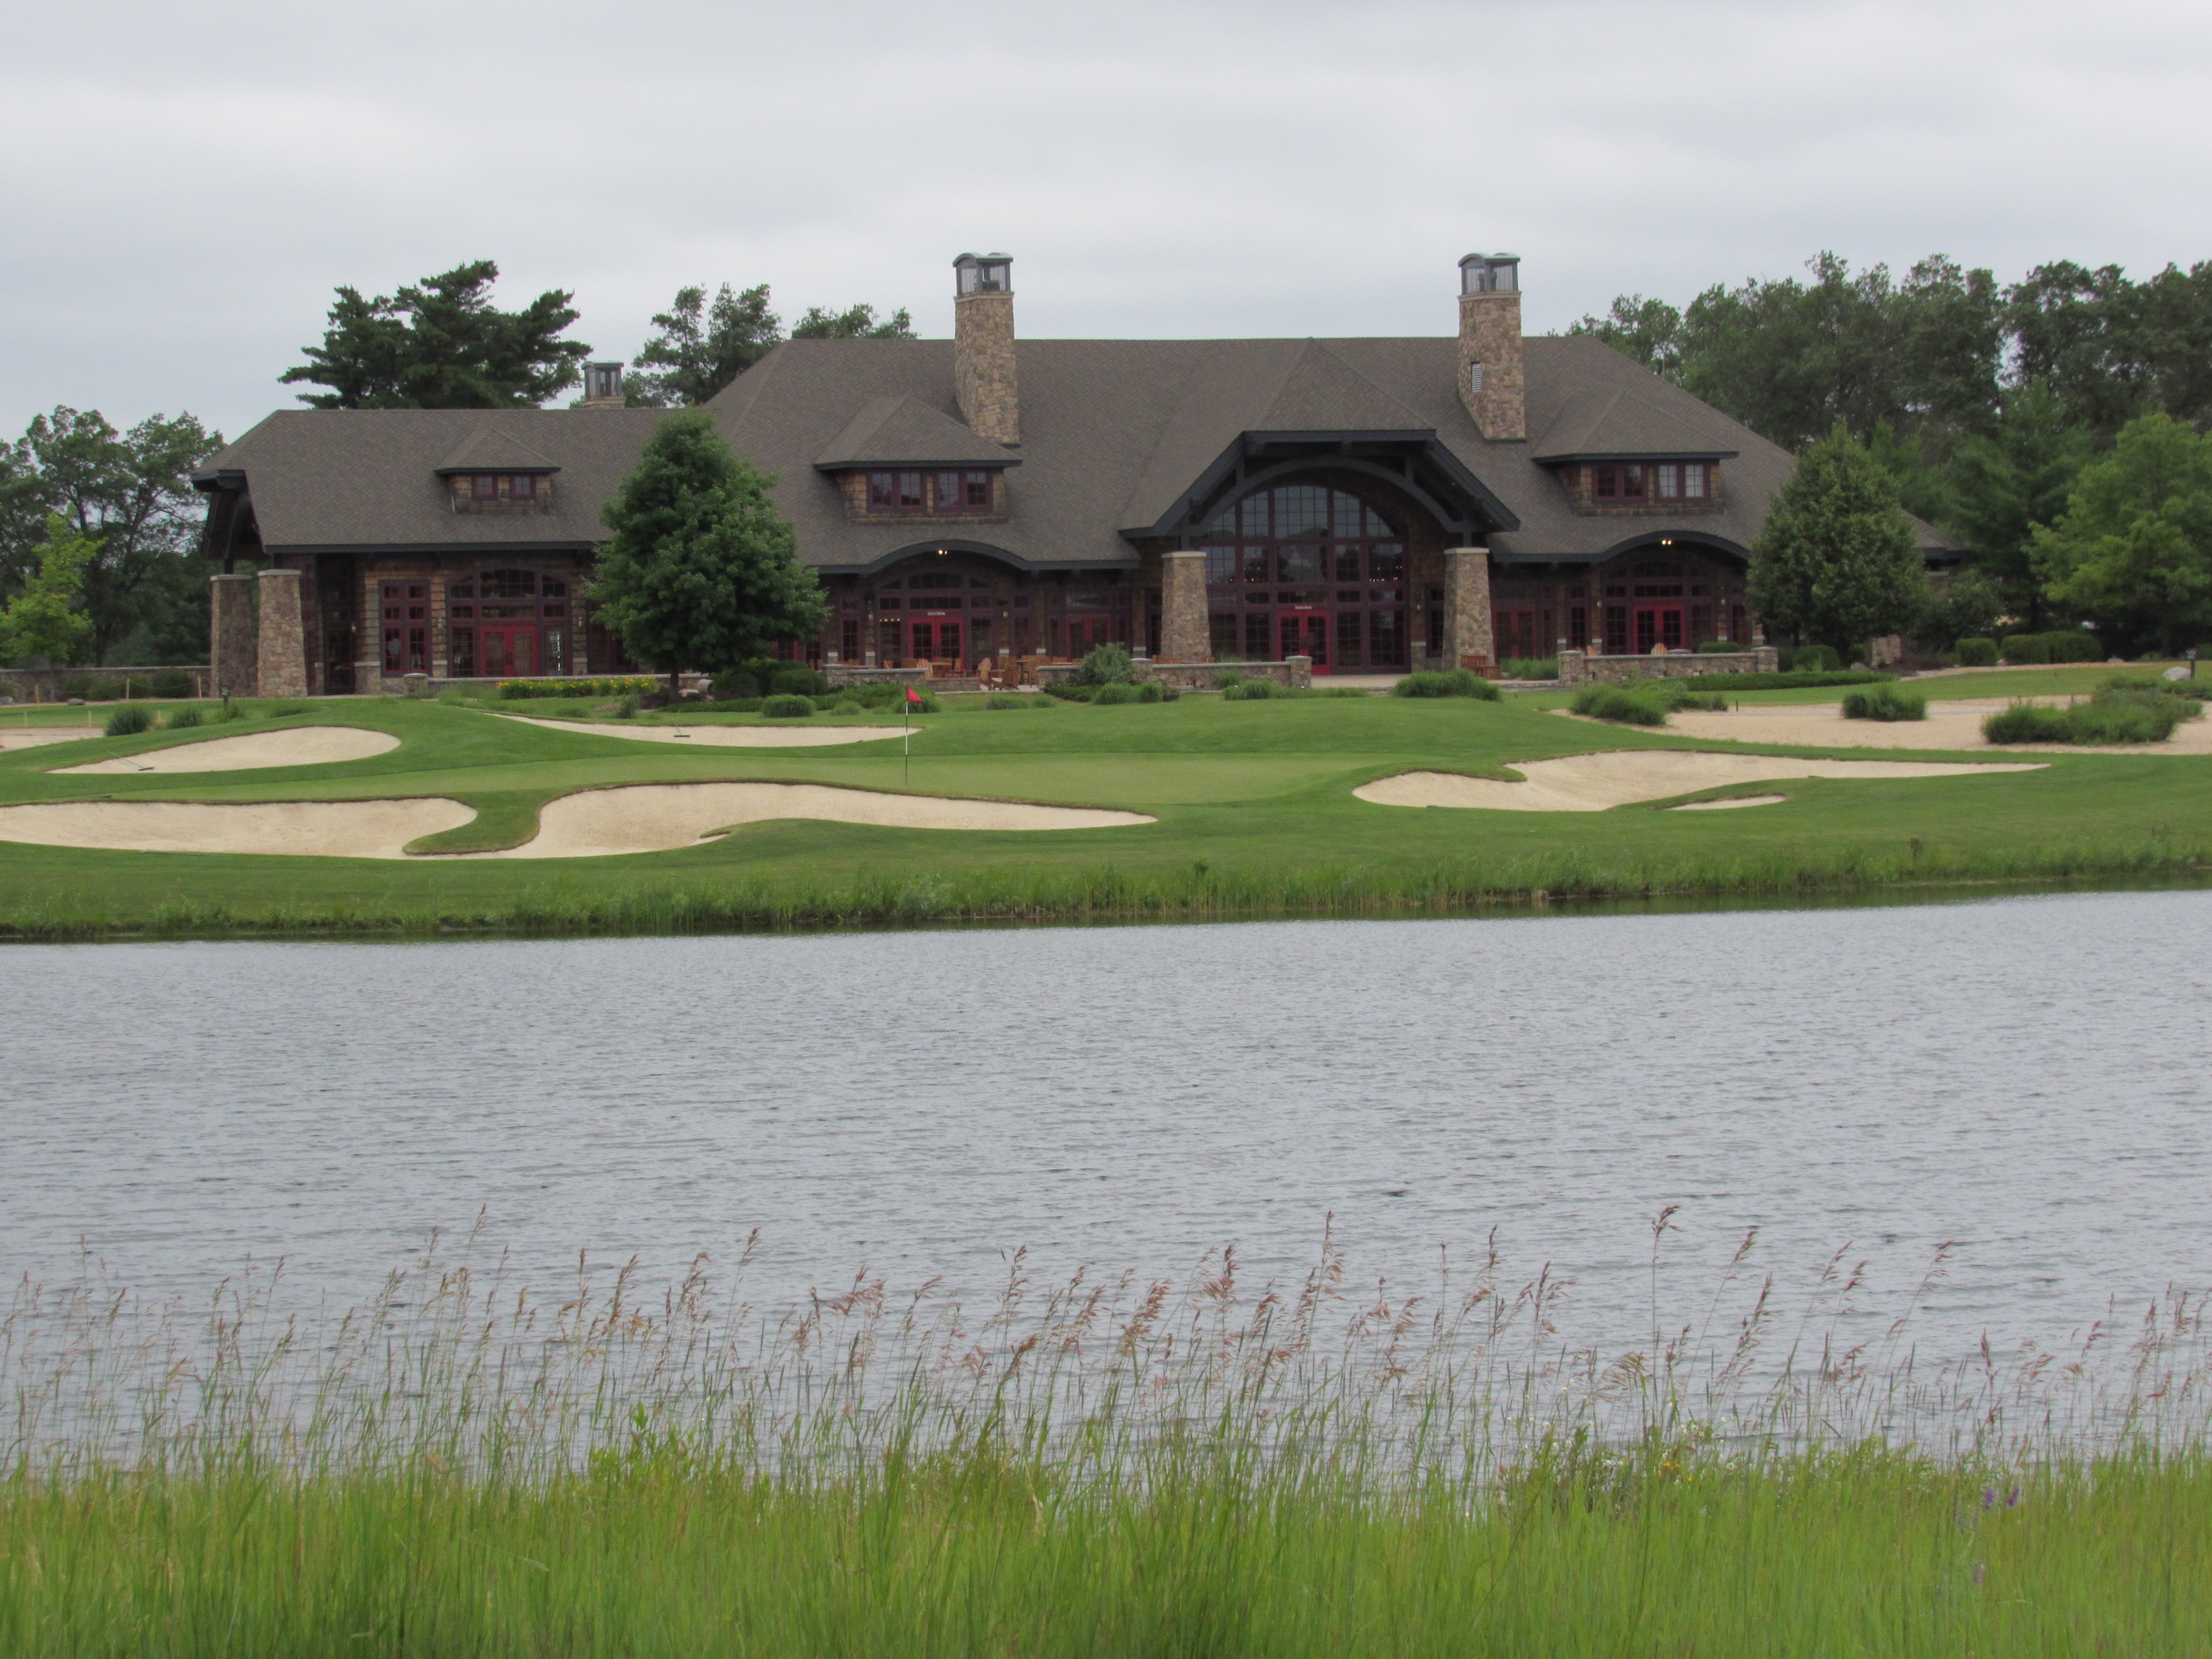 Forest Dunes, The Loop, and more! Destination golf in Roscommon, Michigan